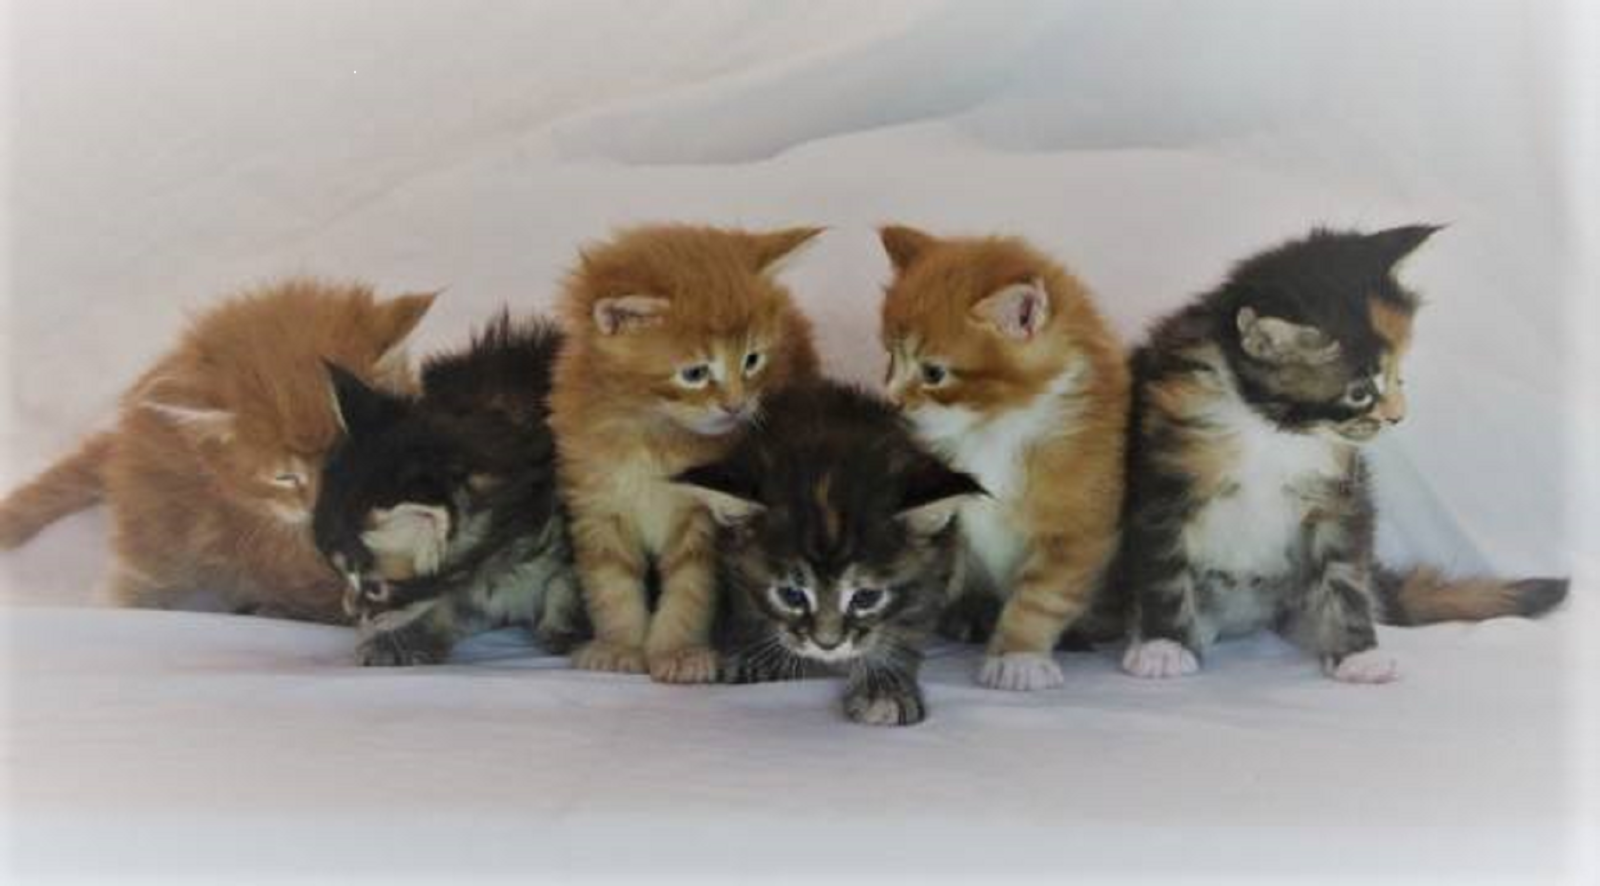 6 Maine Coon kittens from Florida Maine Coons by Opticoons Cattery in Dunnellon Florida